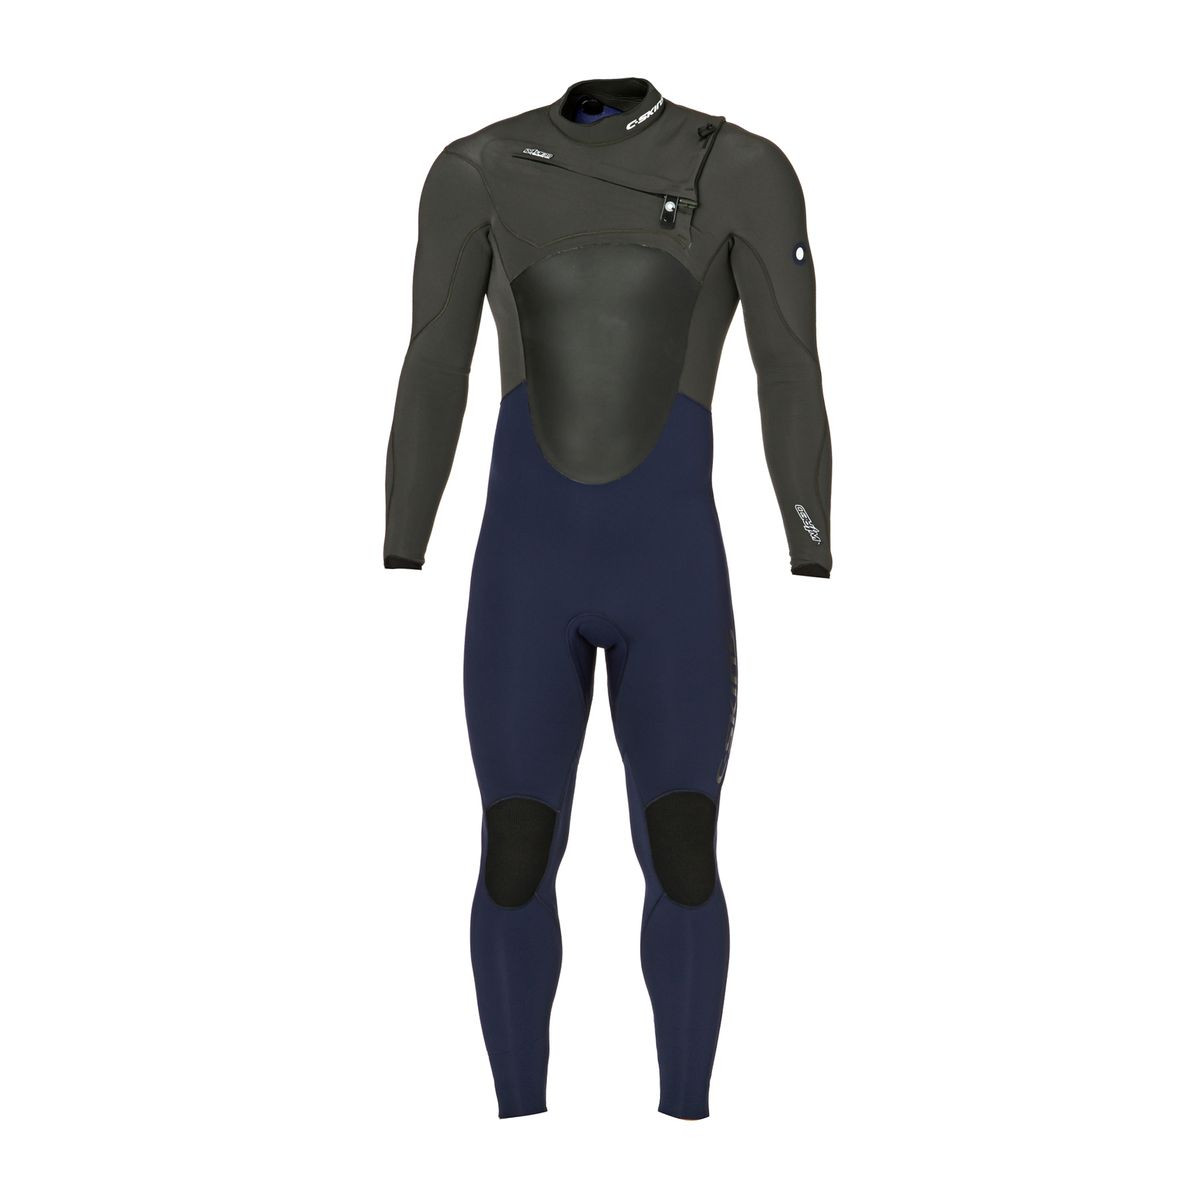 C-Skins Wired 4/3mm 2017 Chest Zip Wetsuit - Ink Blue/ Grey